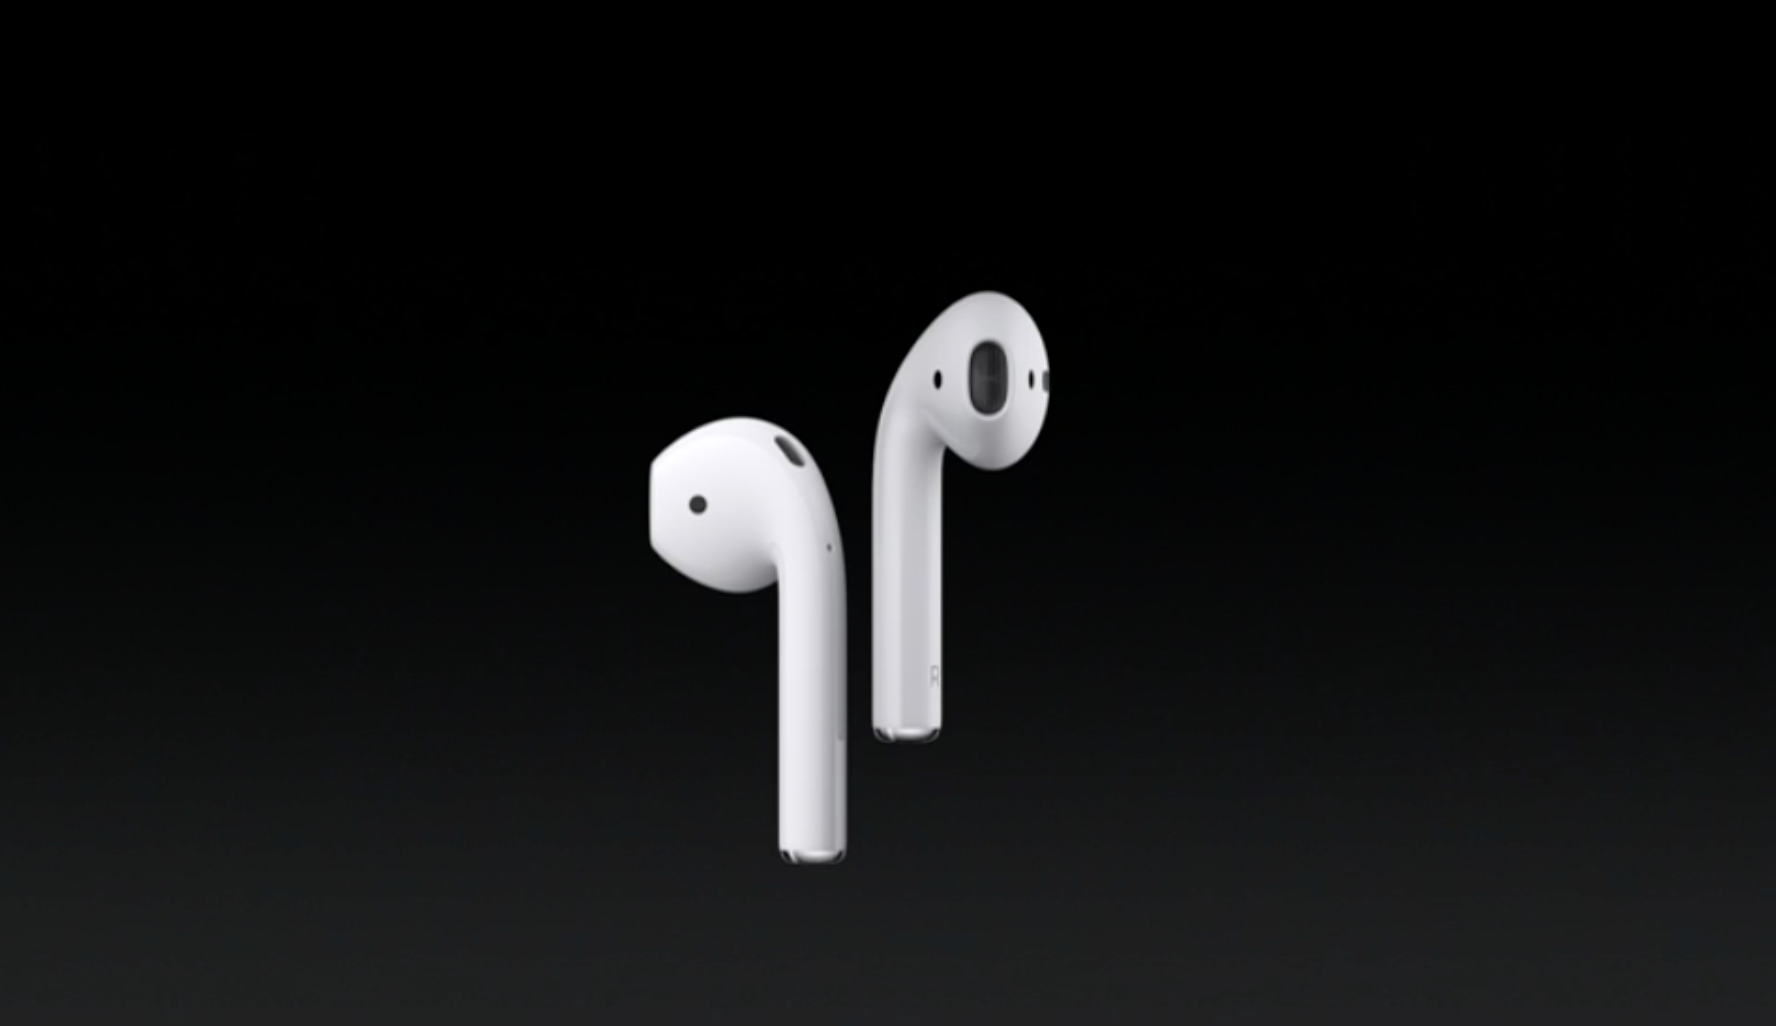 Apple's AirPods are smart wireless earbuds with a new W1 chip